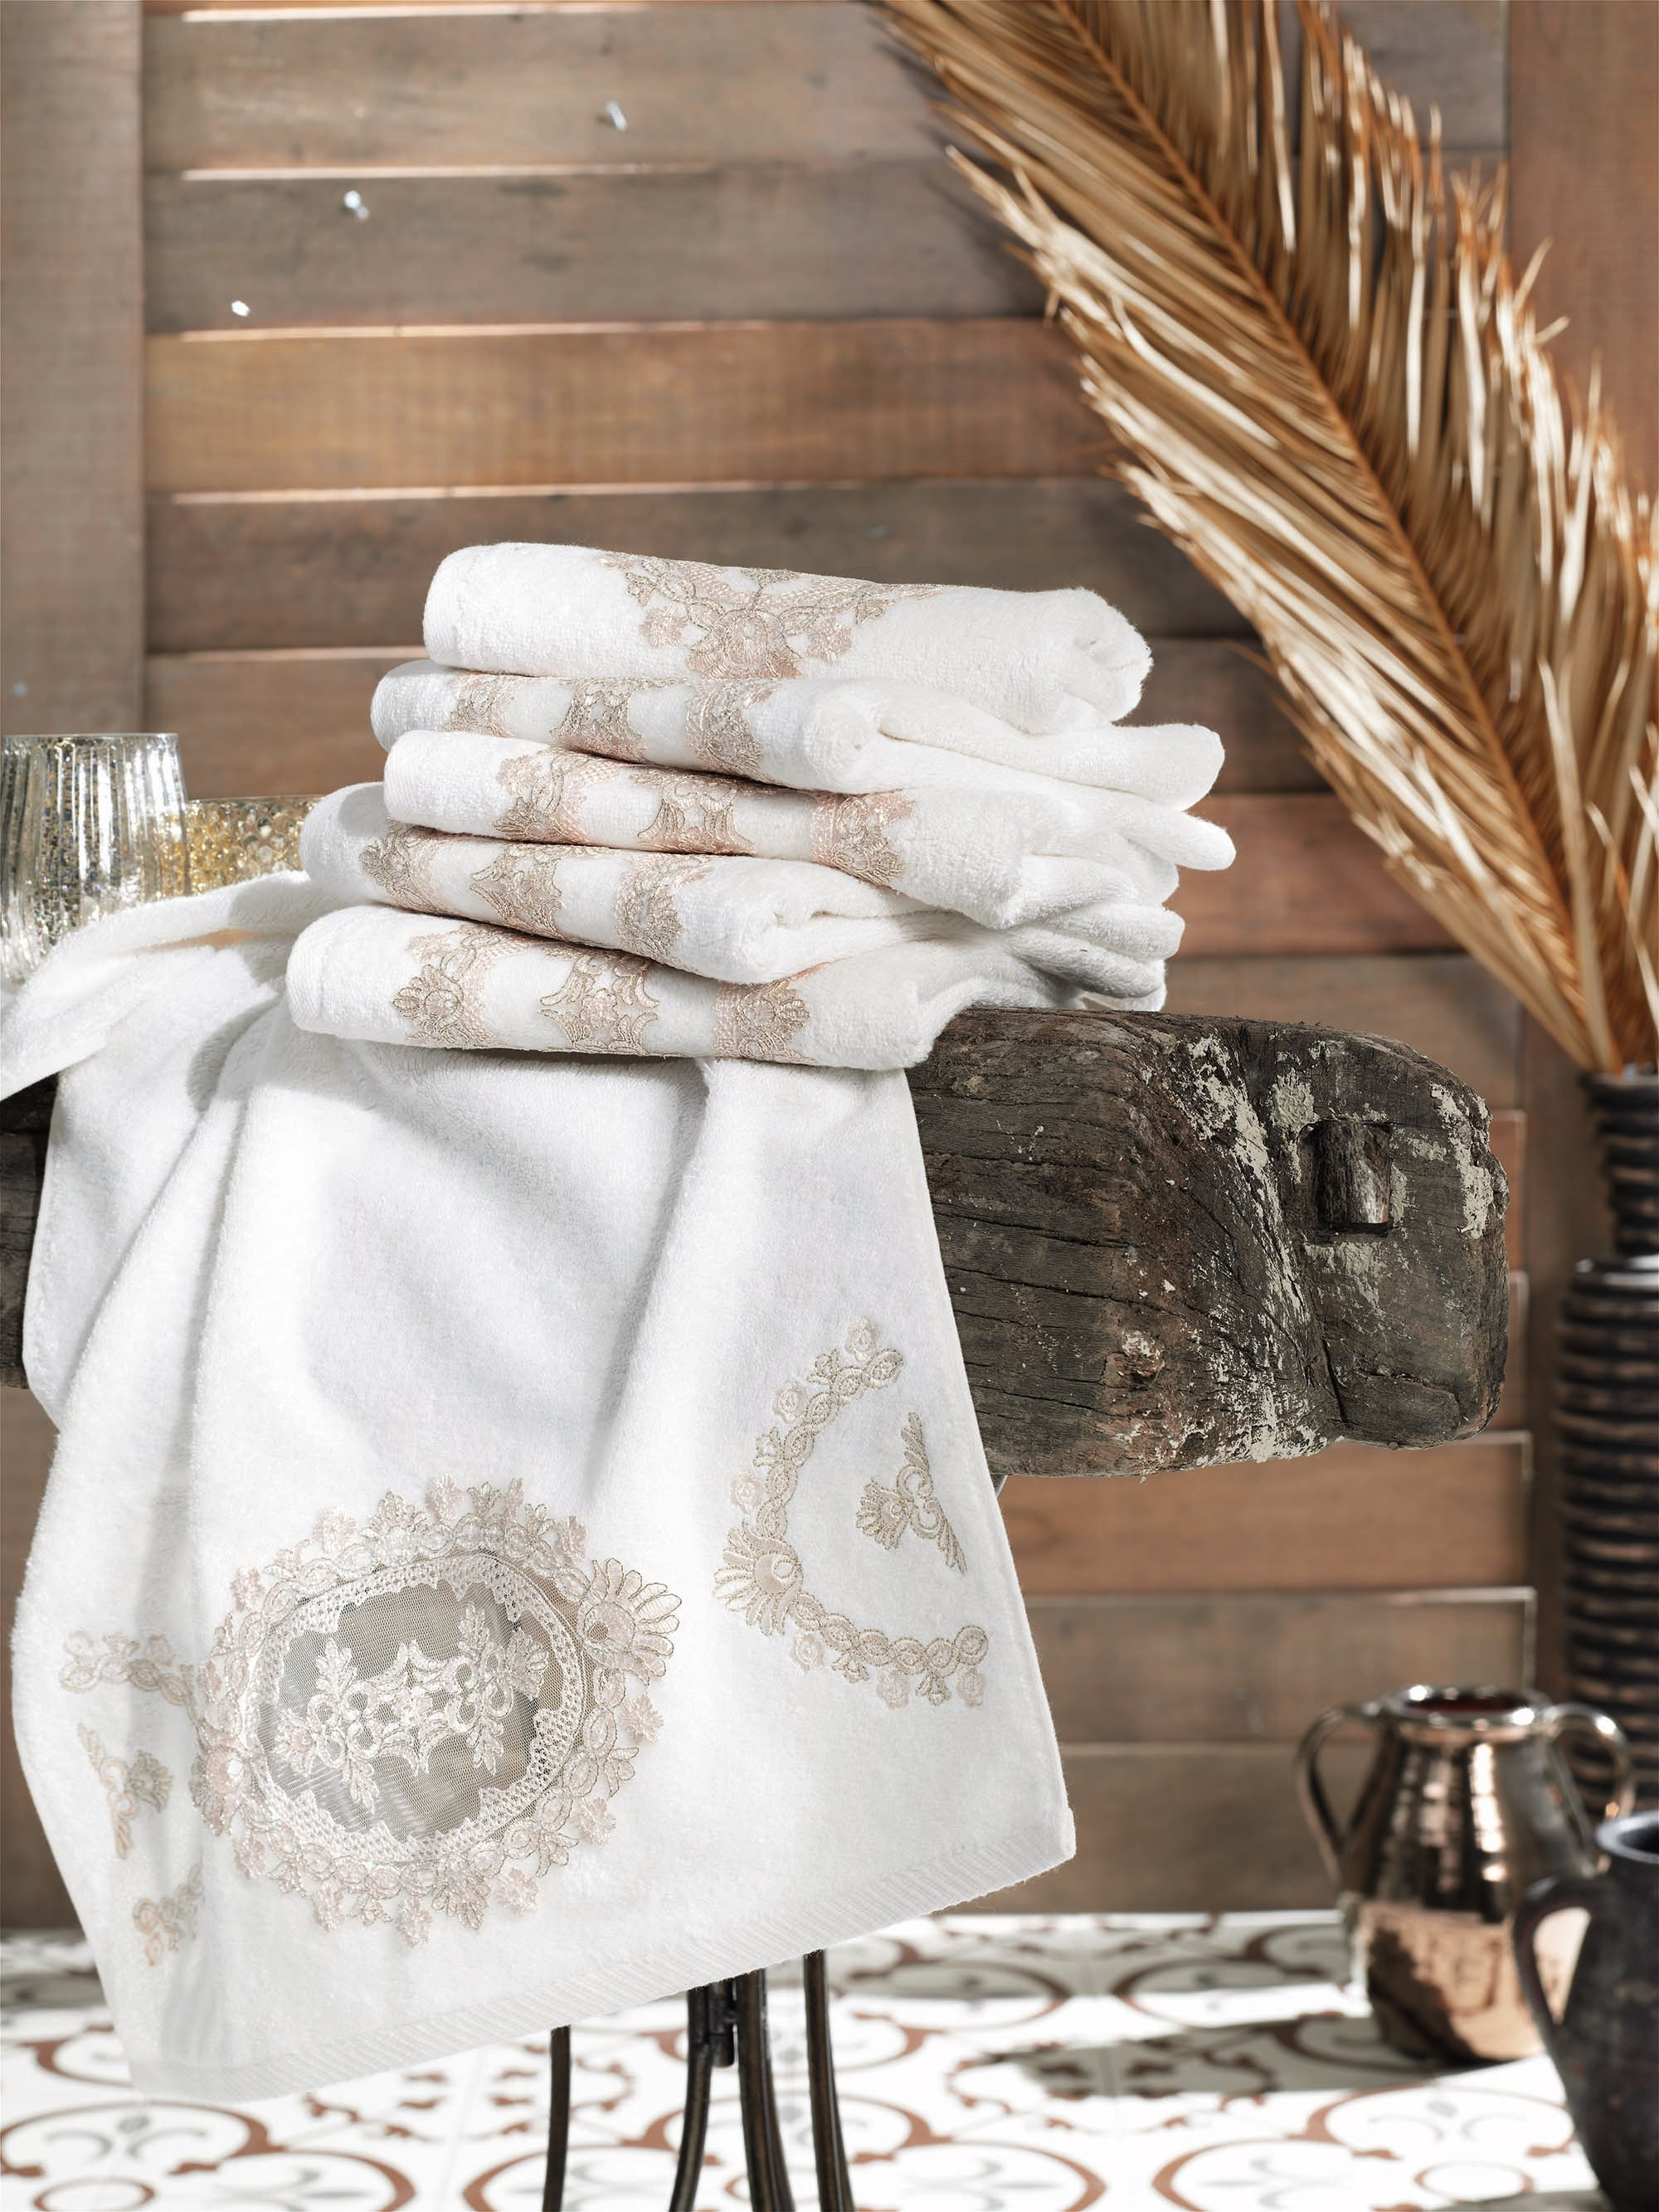 TURKISH BAMBOO FANCY TOWEL WITH FRENCH GUIPURE & EMBROIDERY - COTTONISH